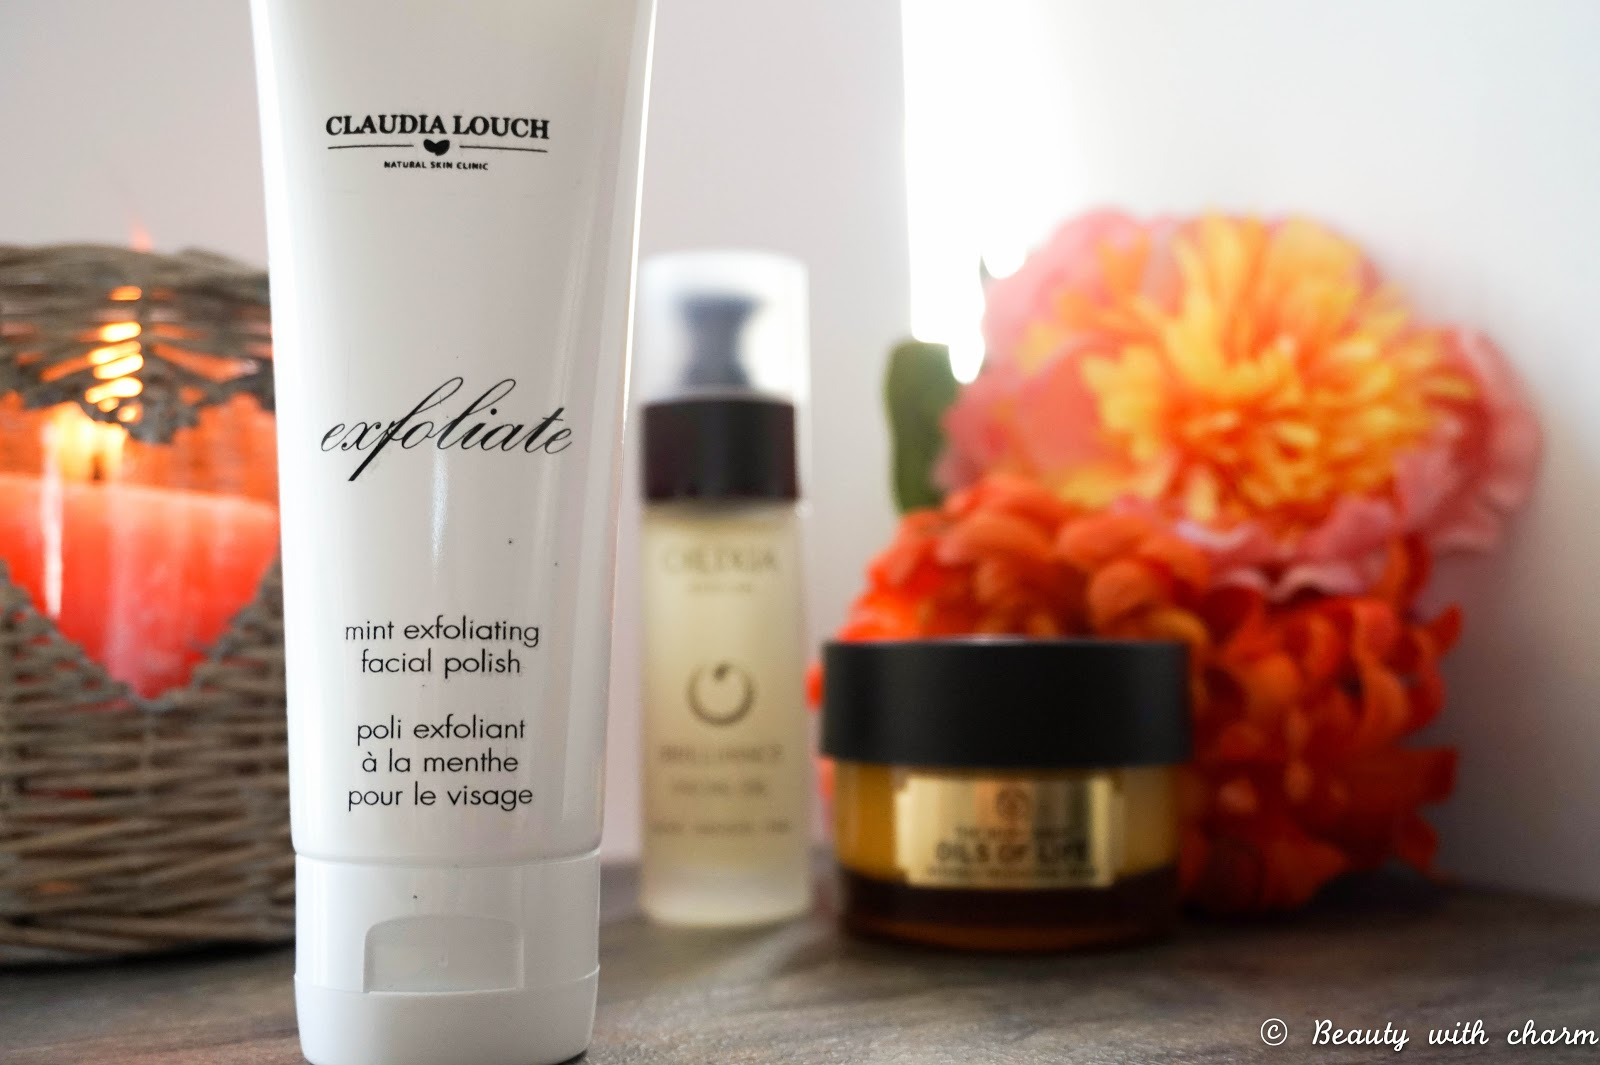 New Skincare on Trial, Oilixia, Claudia Louch, The Body Shop